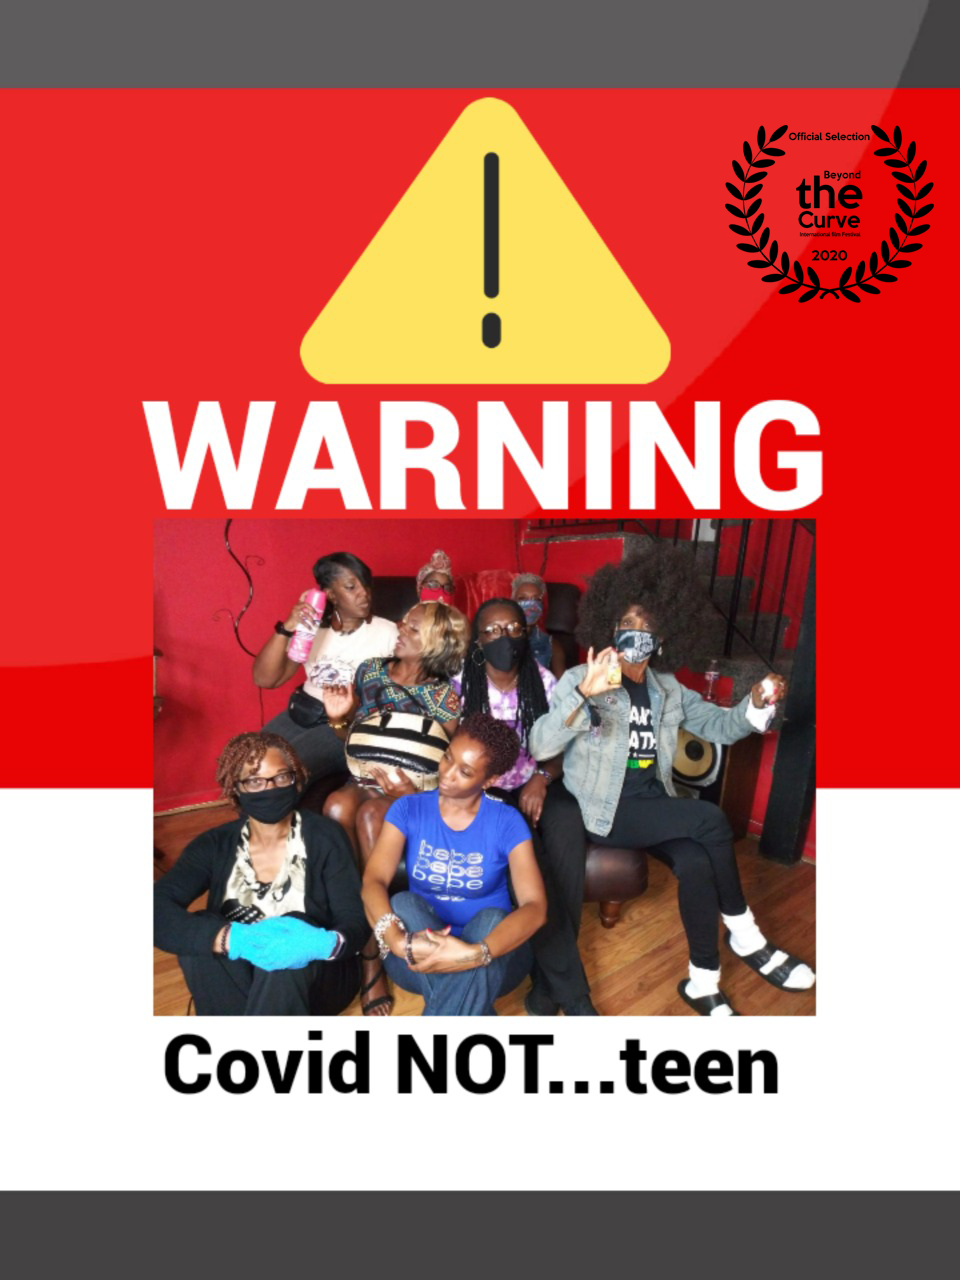 Covid not teen